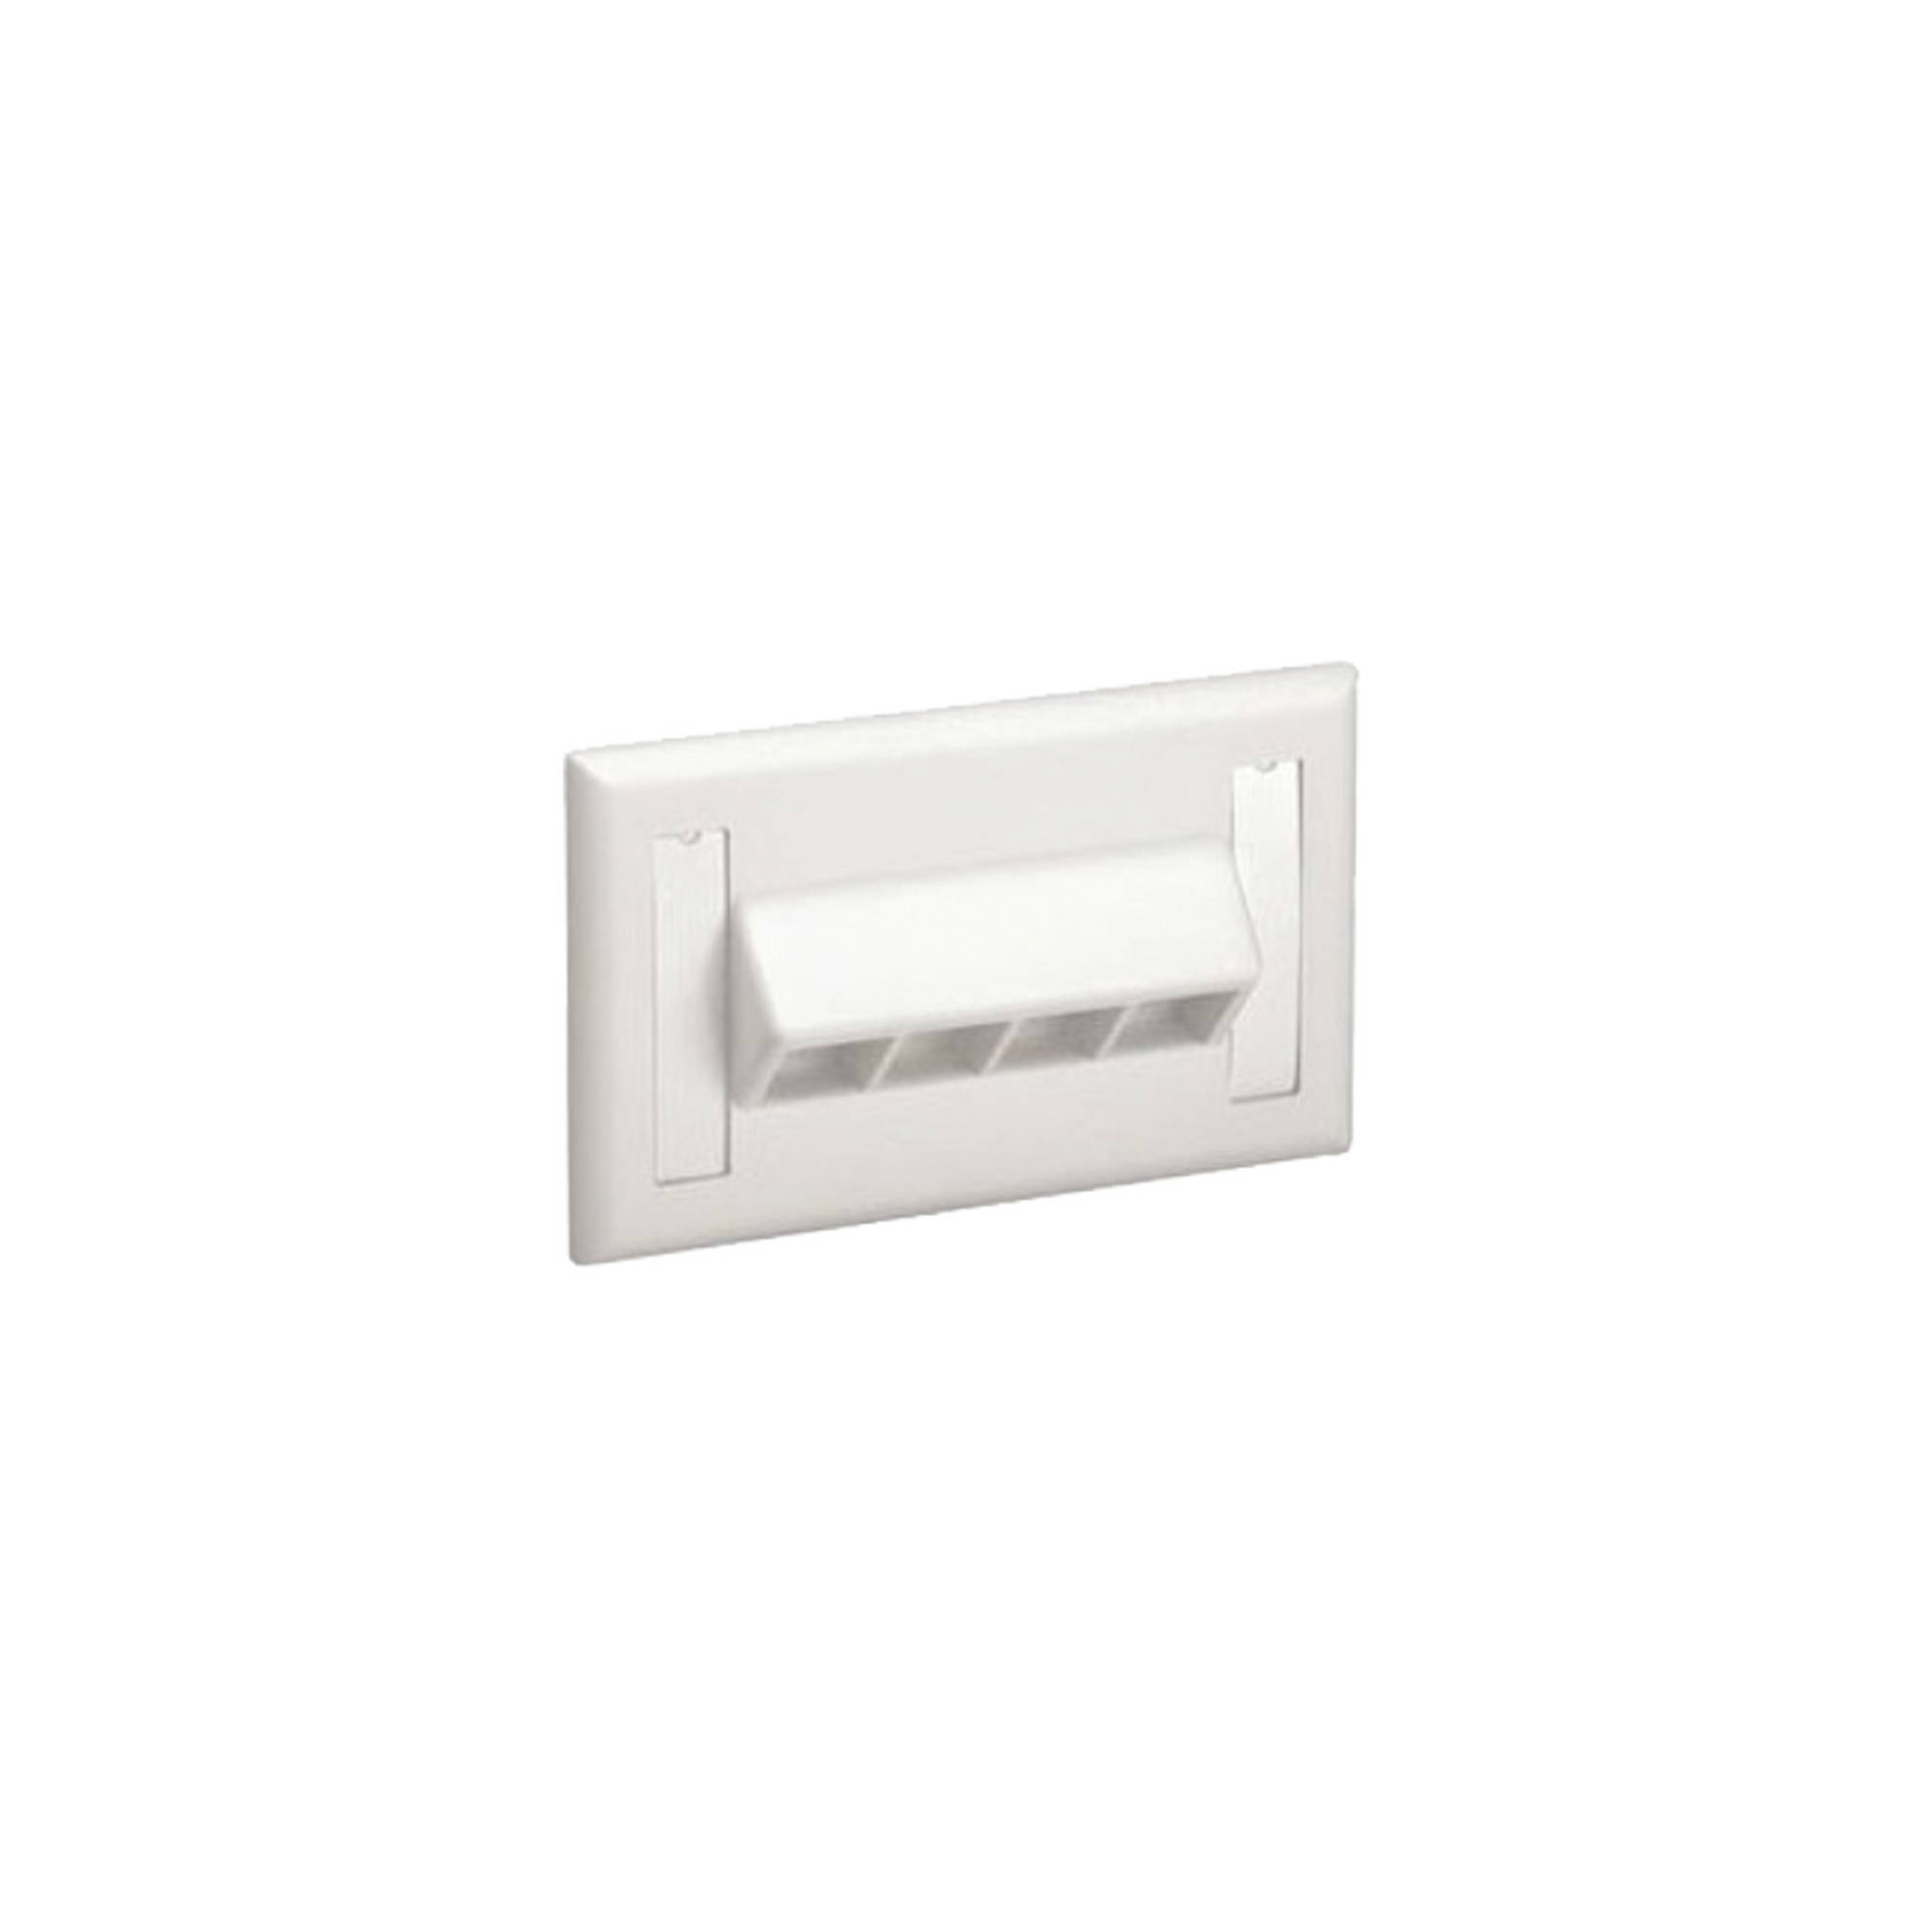 Placa de Pared Horizontal, Salida Para 4 Puertos Keystone, Con Espacios Para Etiquetas, Color Blanco Mate